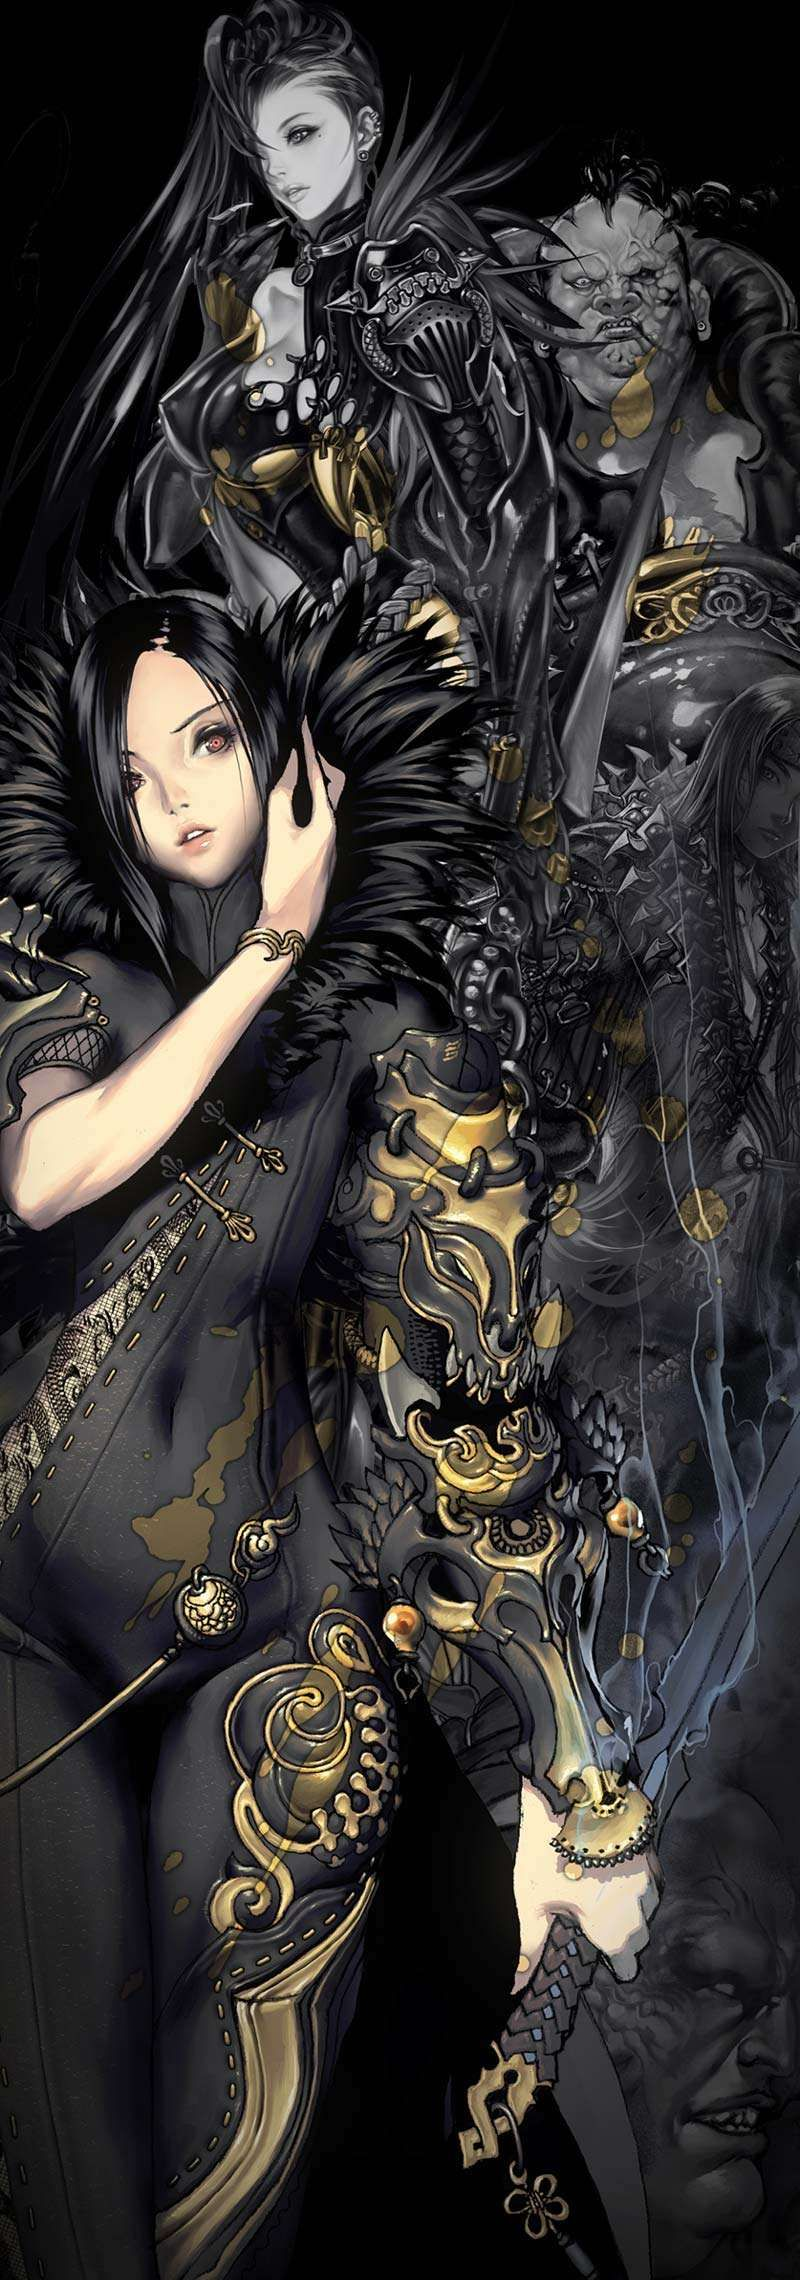 Blade & Soul Character Poster by HyungTae Kim Hyung Tae